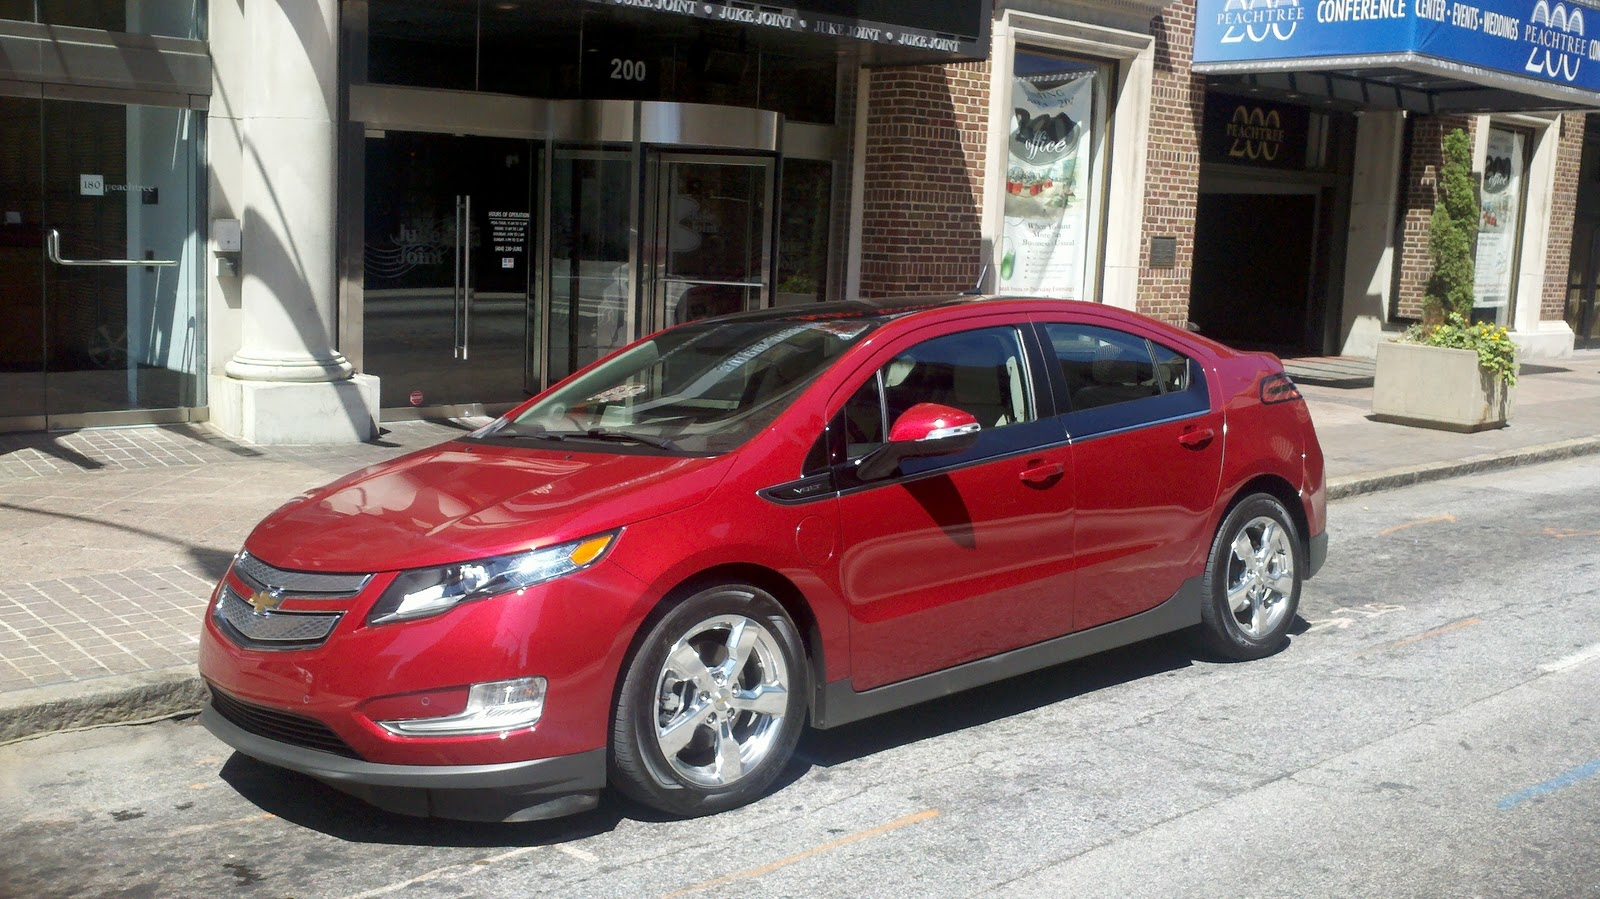 Highlights This Is Gm S First Gas And Electric Ed M Marketed Vehicle Early Statistics Reveal That 78 Of Volt Ers Didn T Own A At